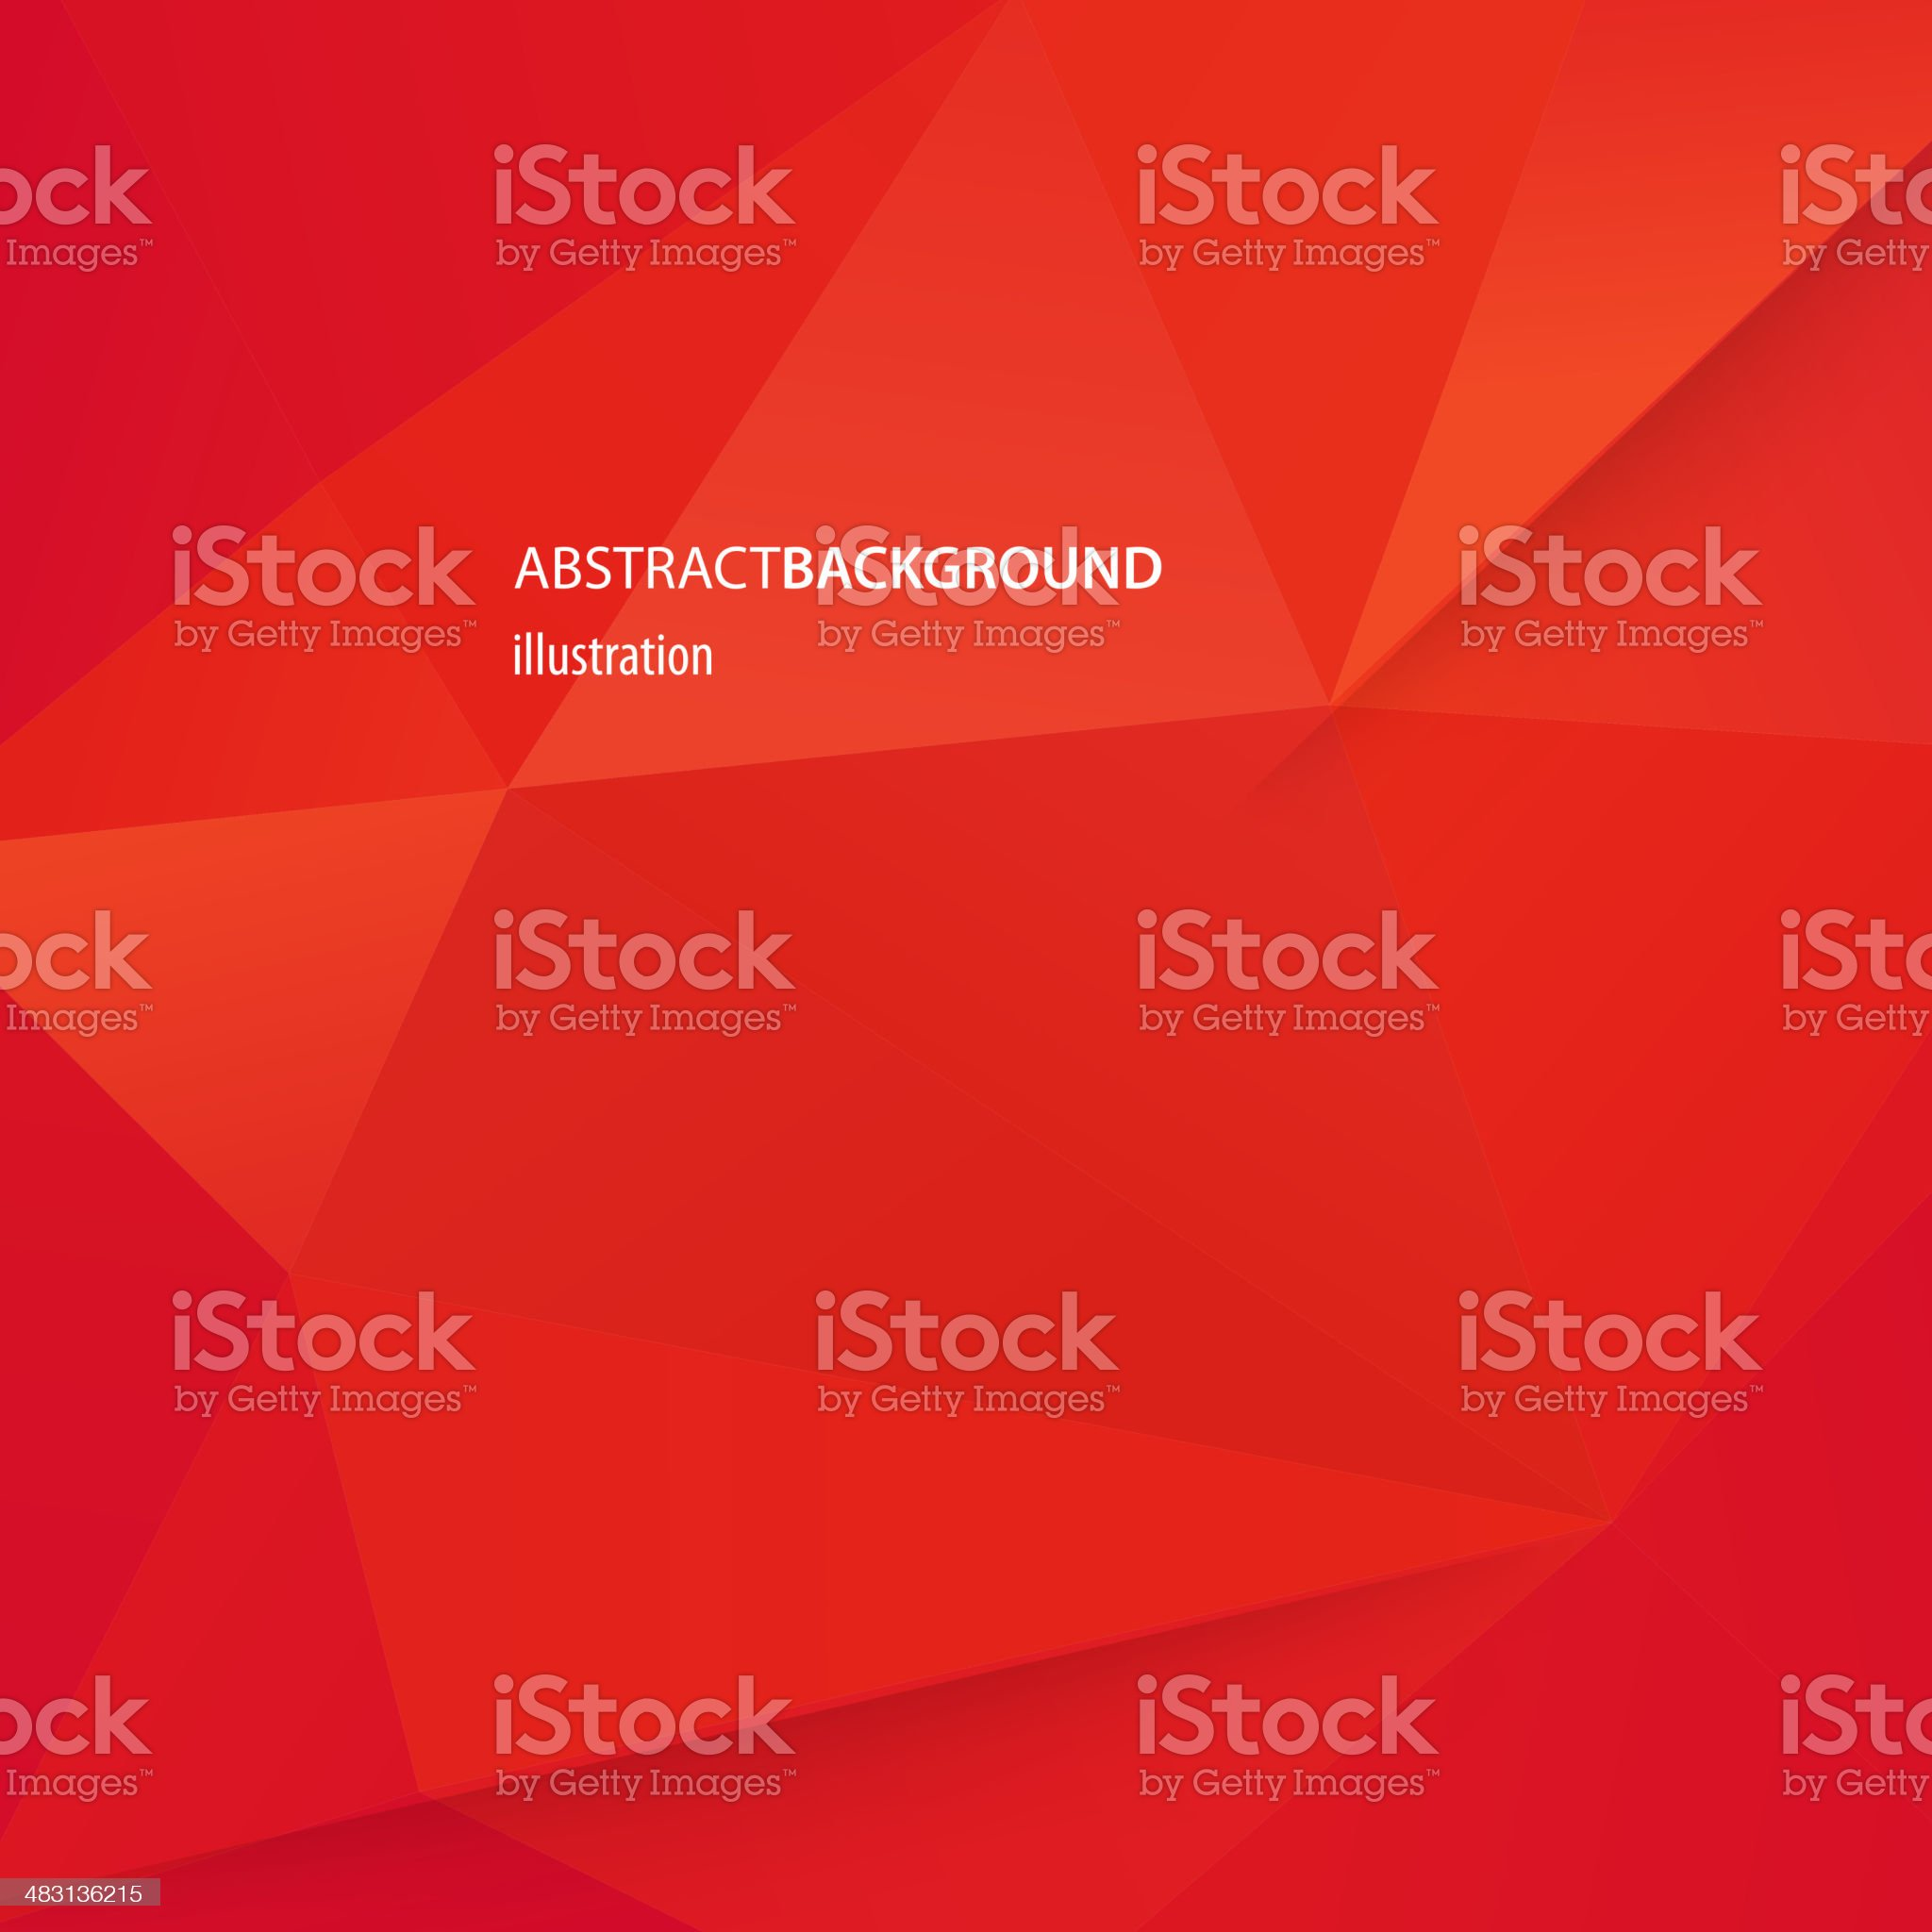 Vector illustration of abstract red background royalty-free stock vector art